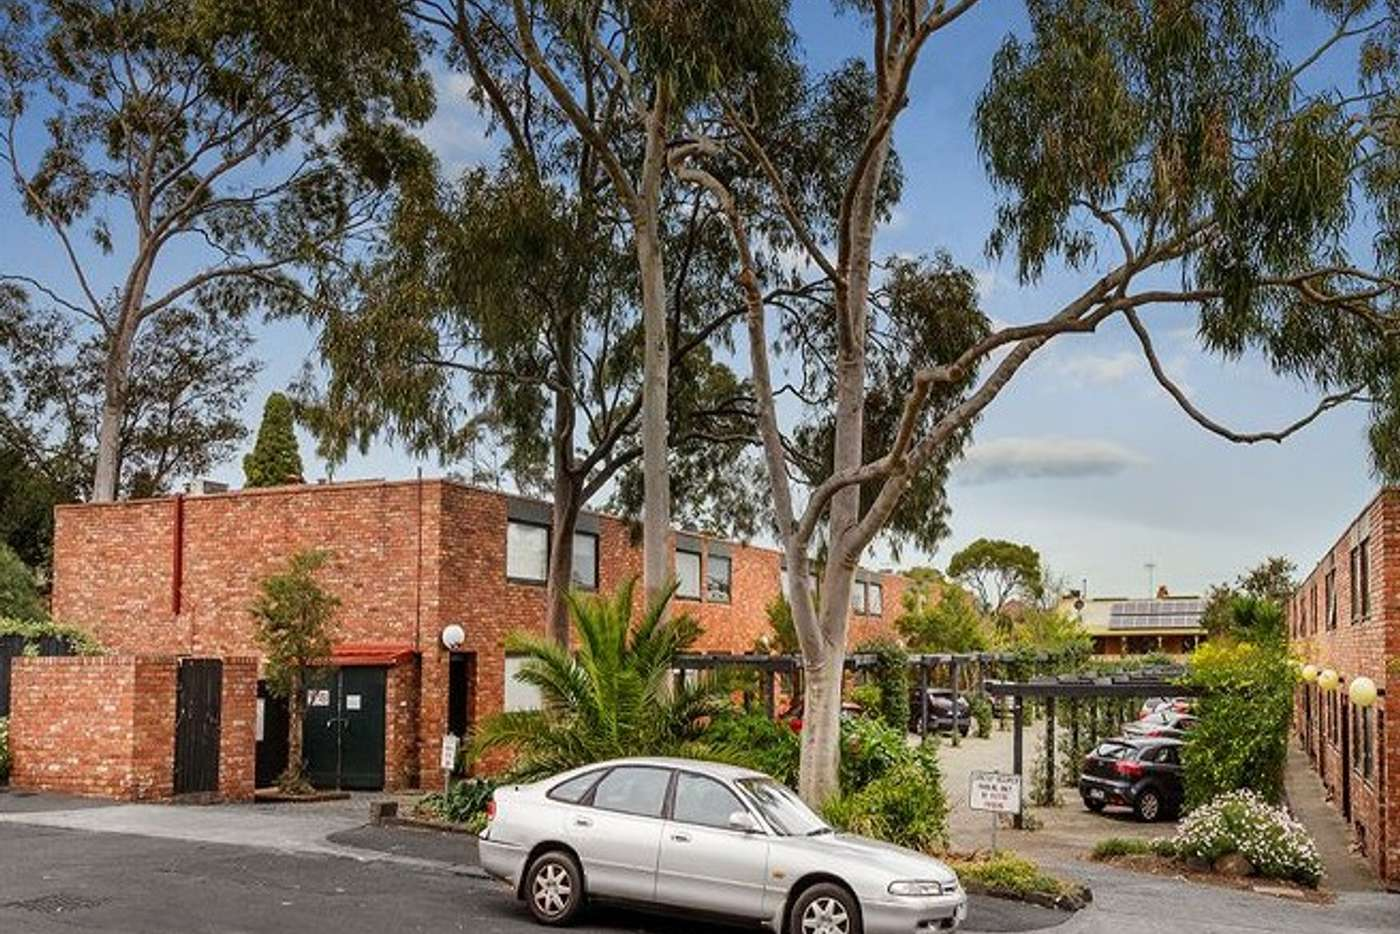 Main view of Homely apartment listing, 3/16 Goodwood Street, Richmond VIC 3121